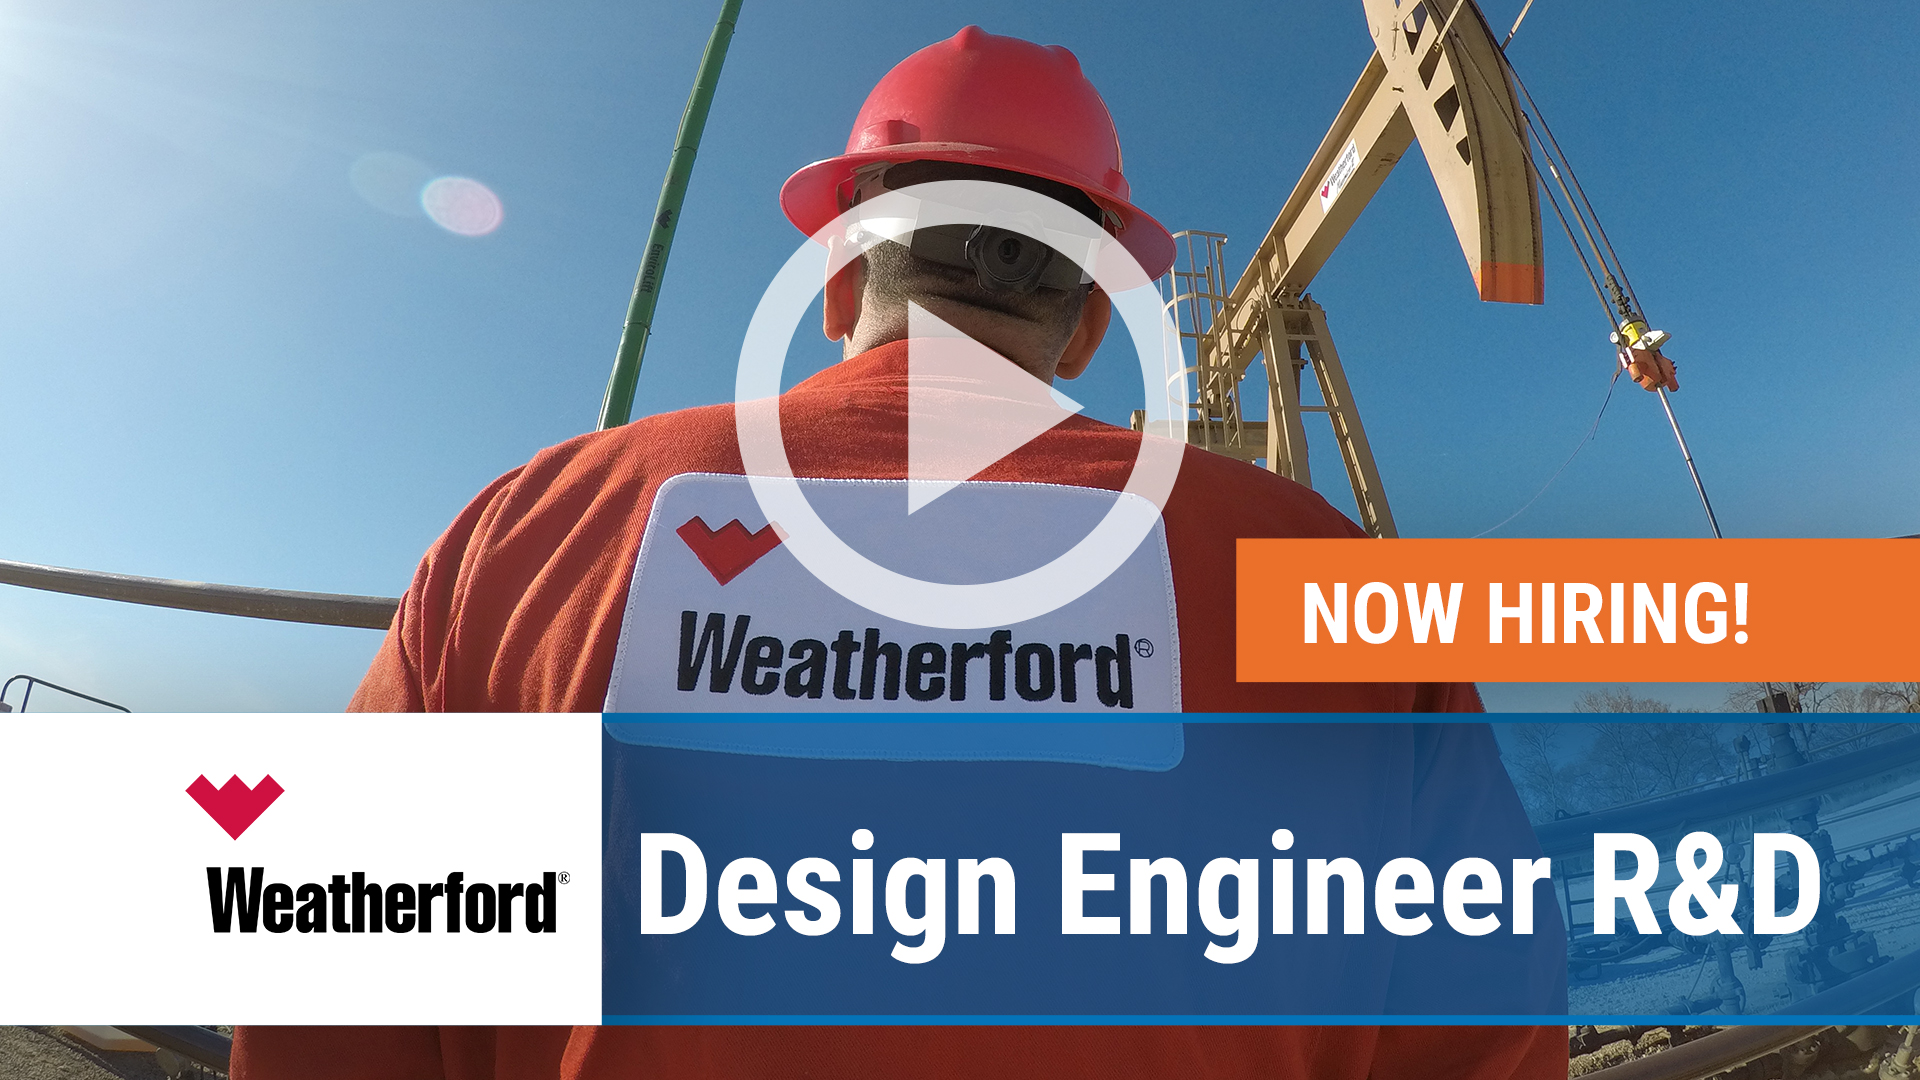 Watch our careers video for available job opening Design Engineer R&D in Houston, TX